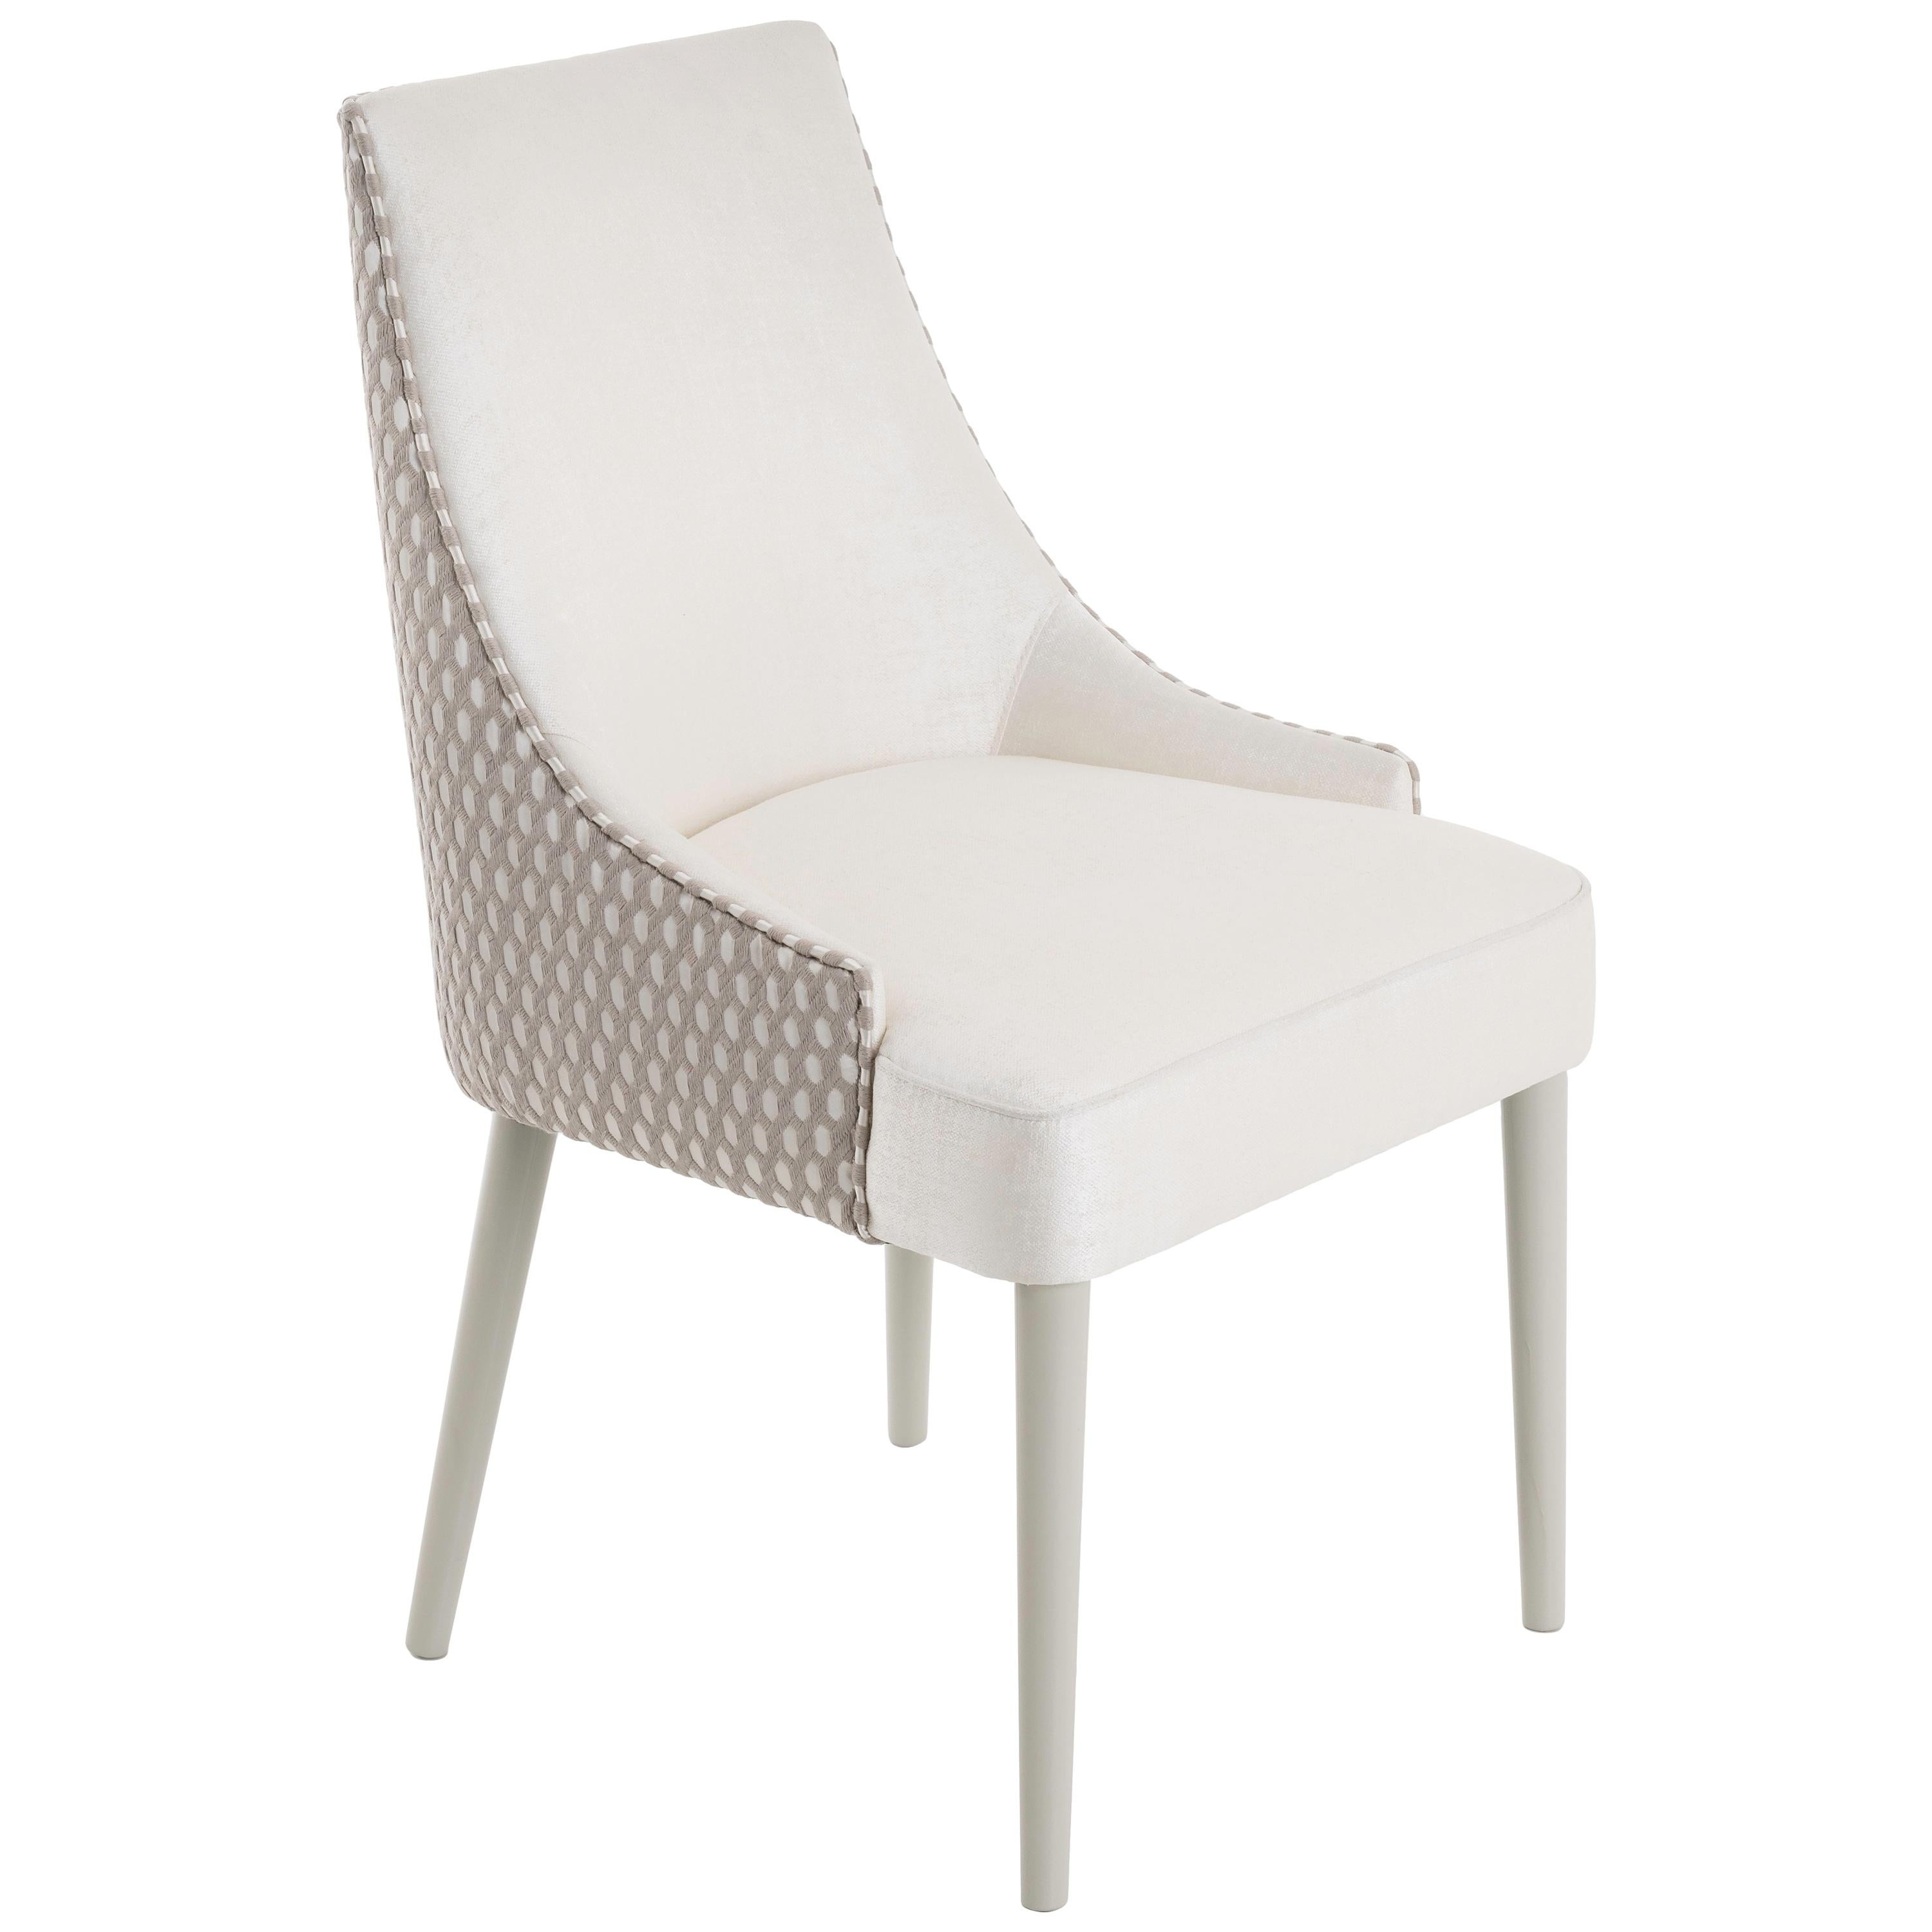 Boavista Dining Chair Upholstered with Two Fabrics and Glossy Lacquered Legs